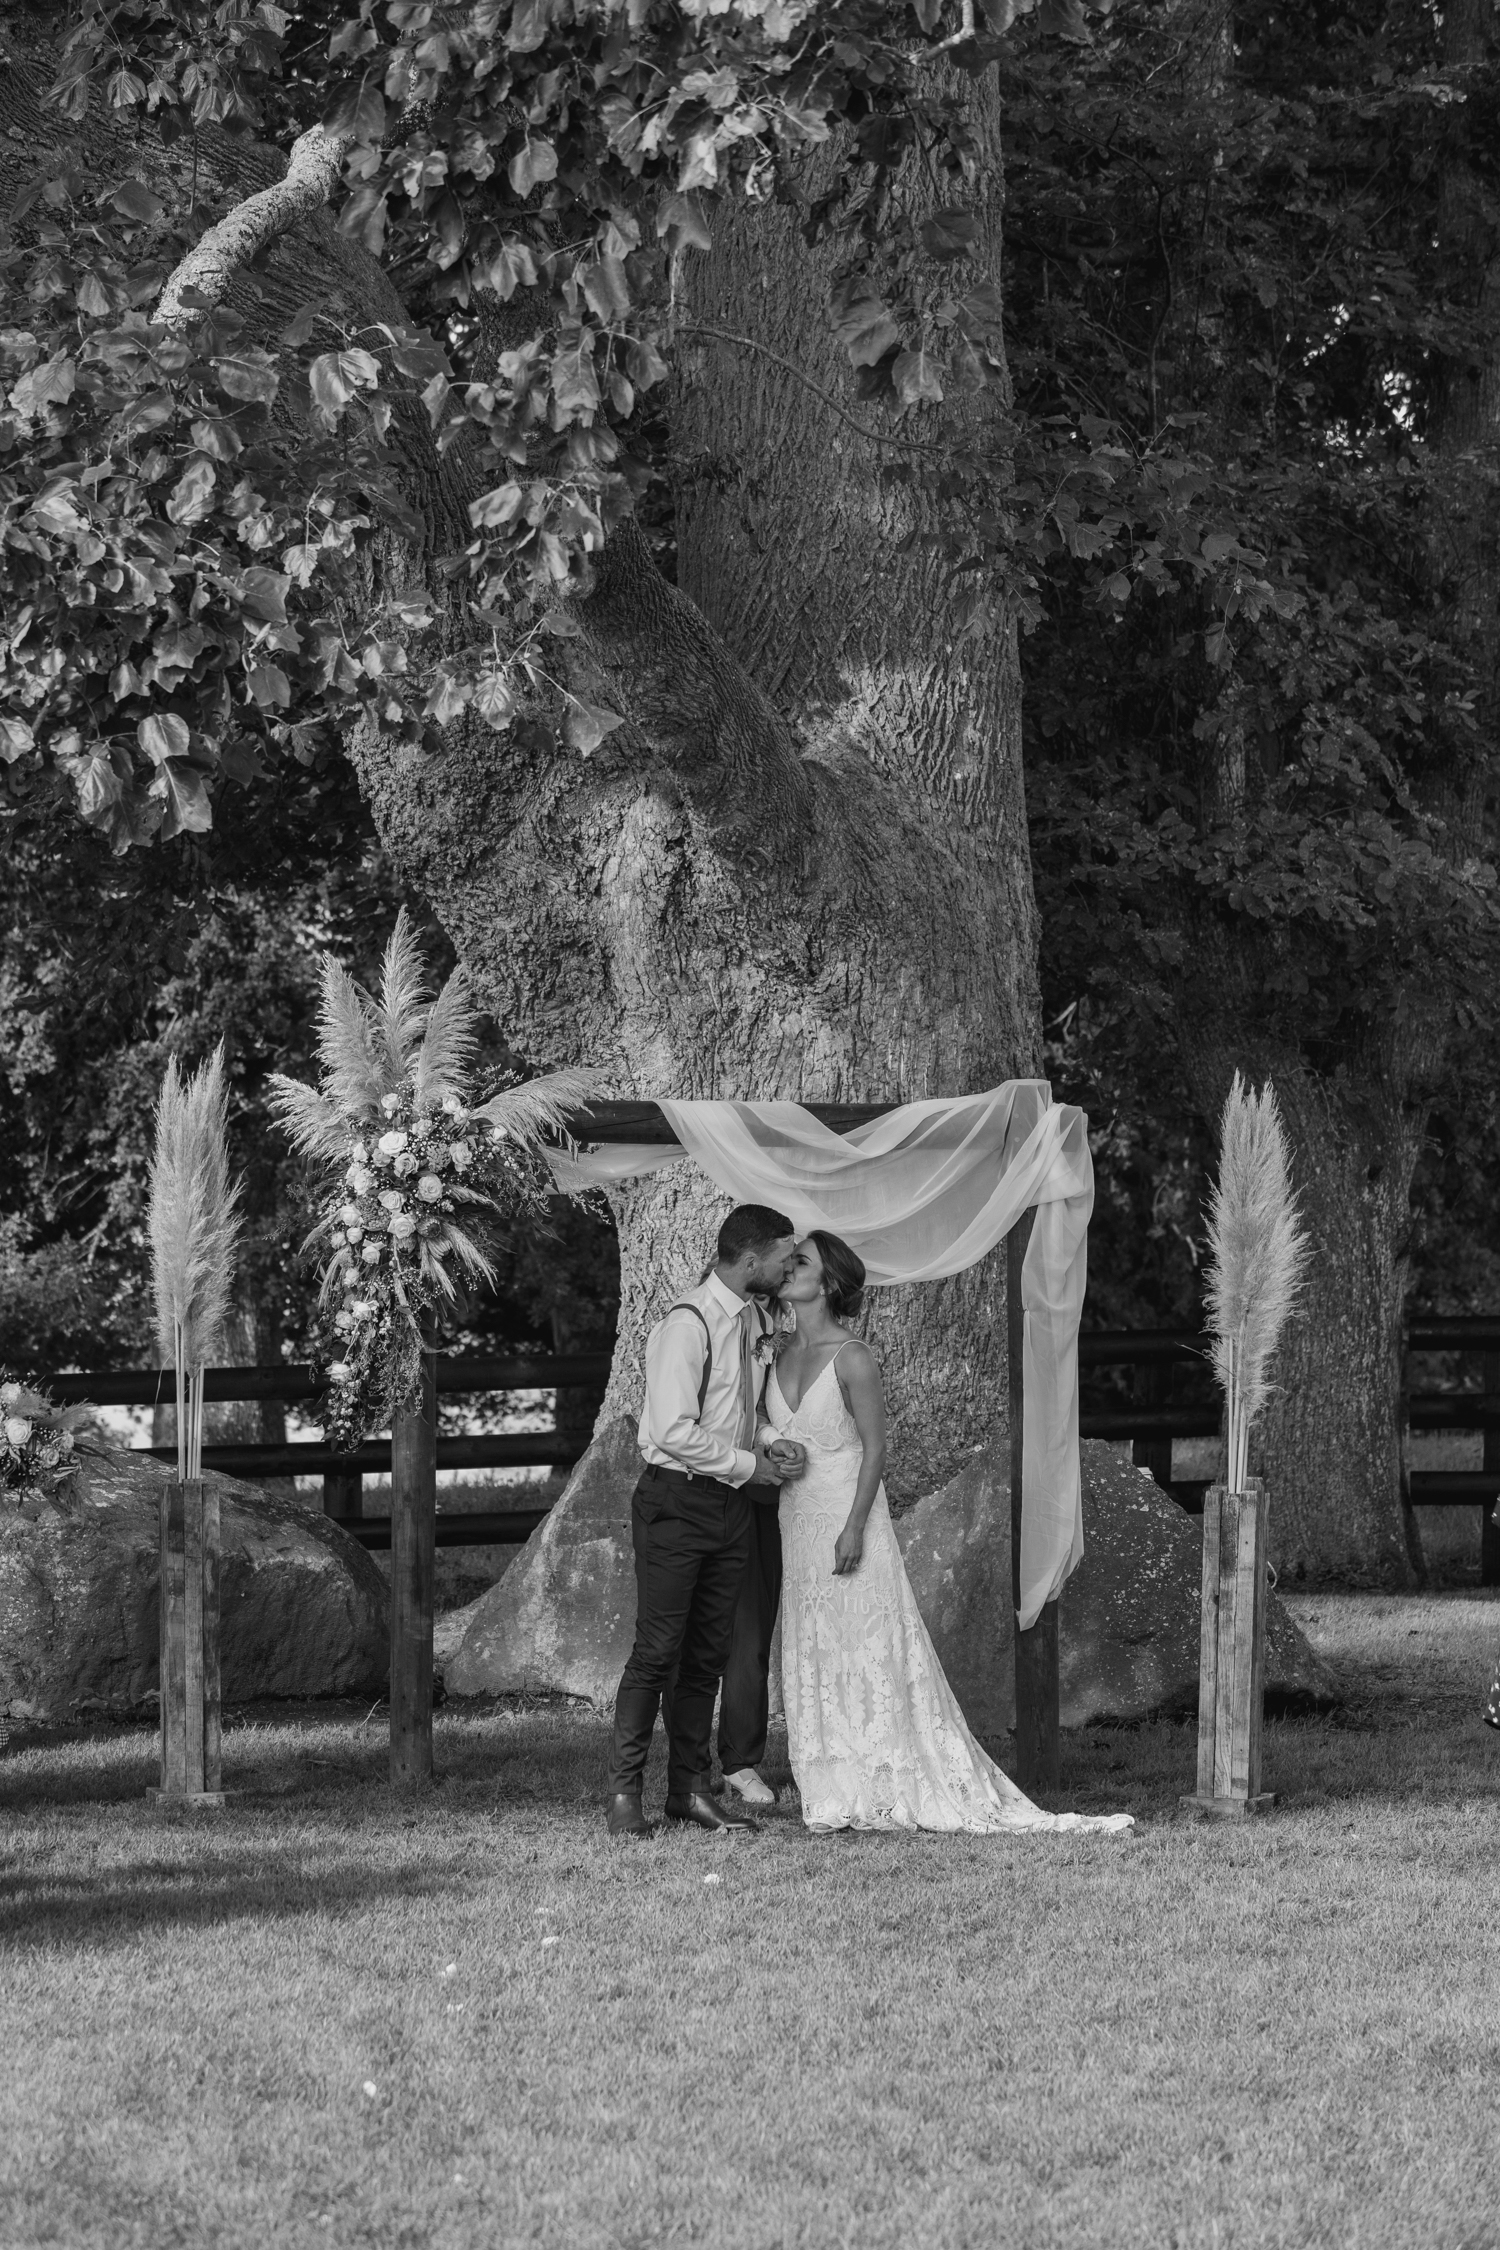 wedding-at-the-red-barn-new-zealand-wedding-photographer-bride-and-groom-kissing-at-ceremony.jpg